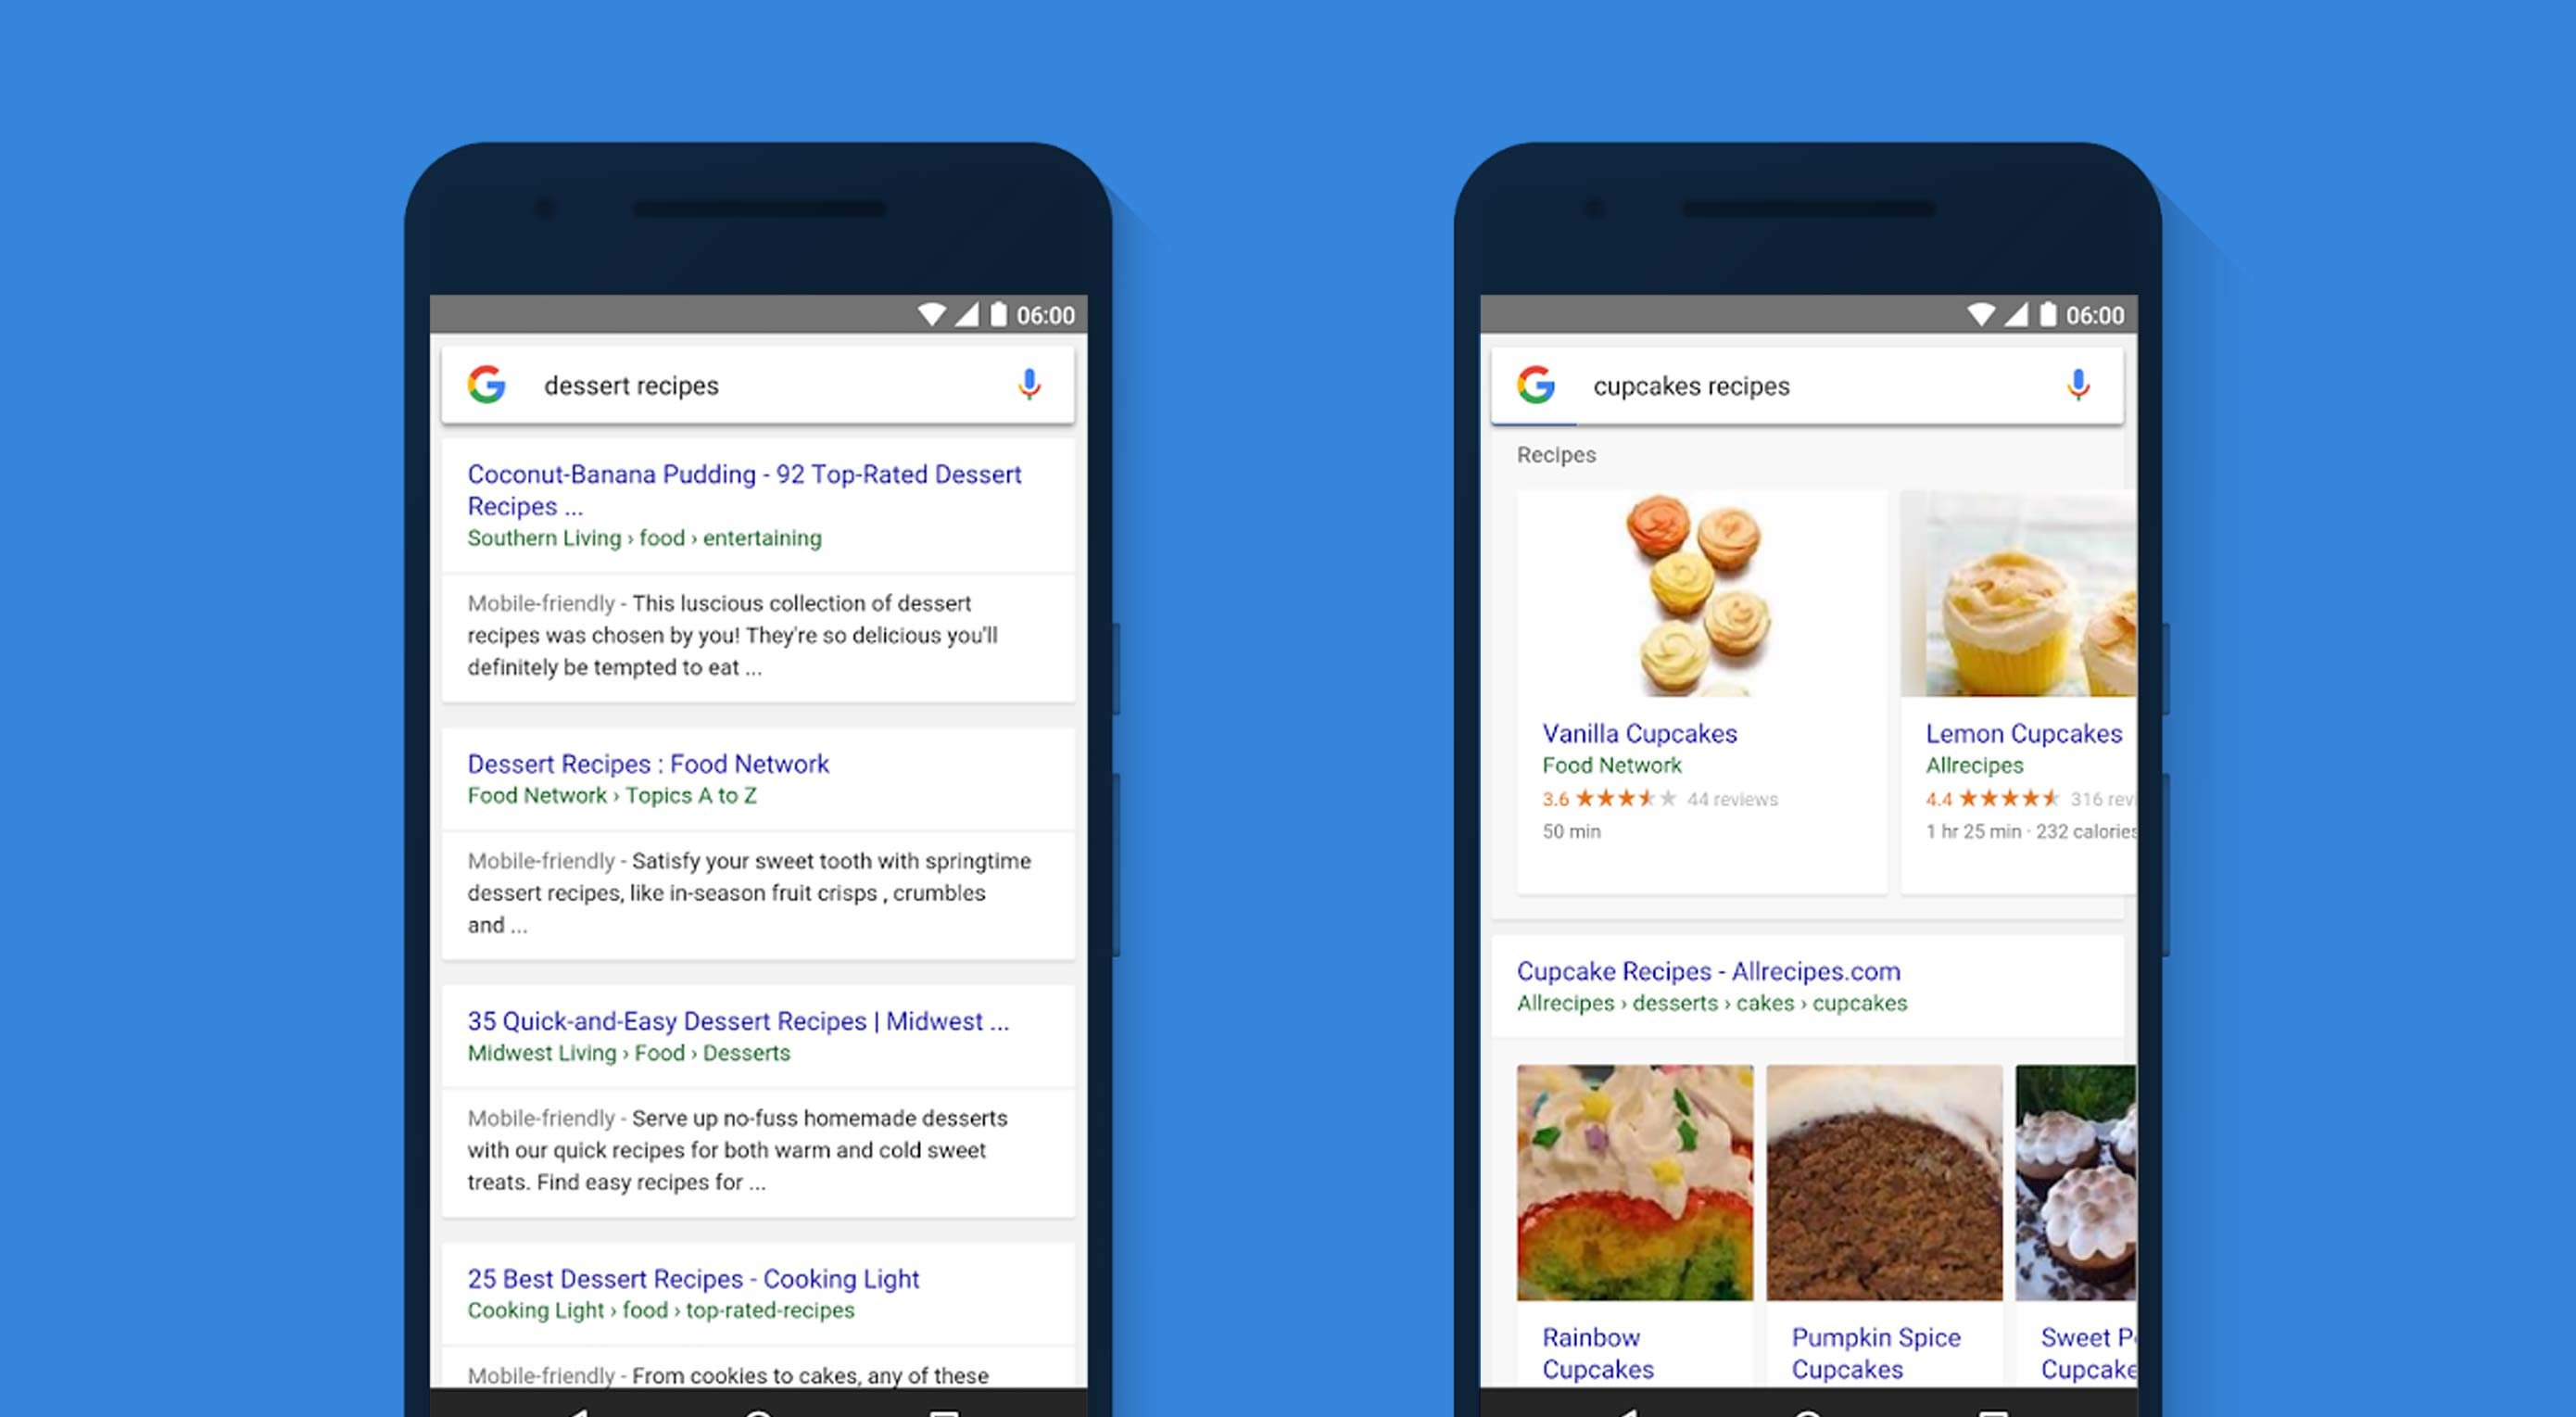 Major redesign unveiled for Google Search